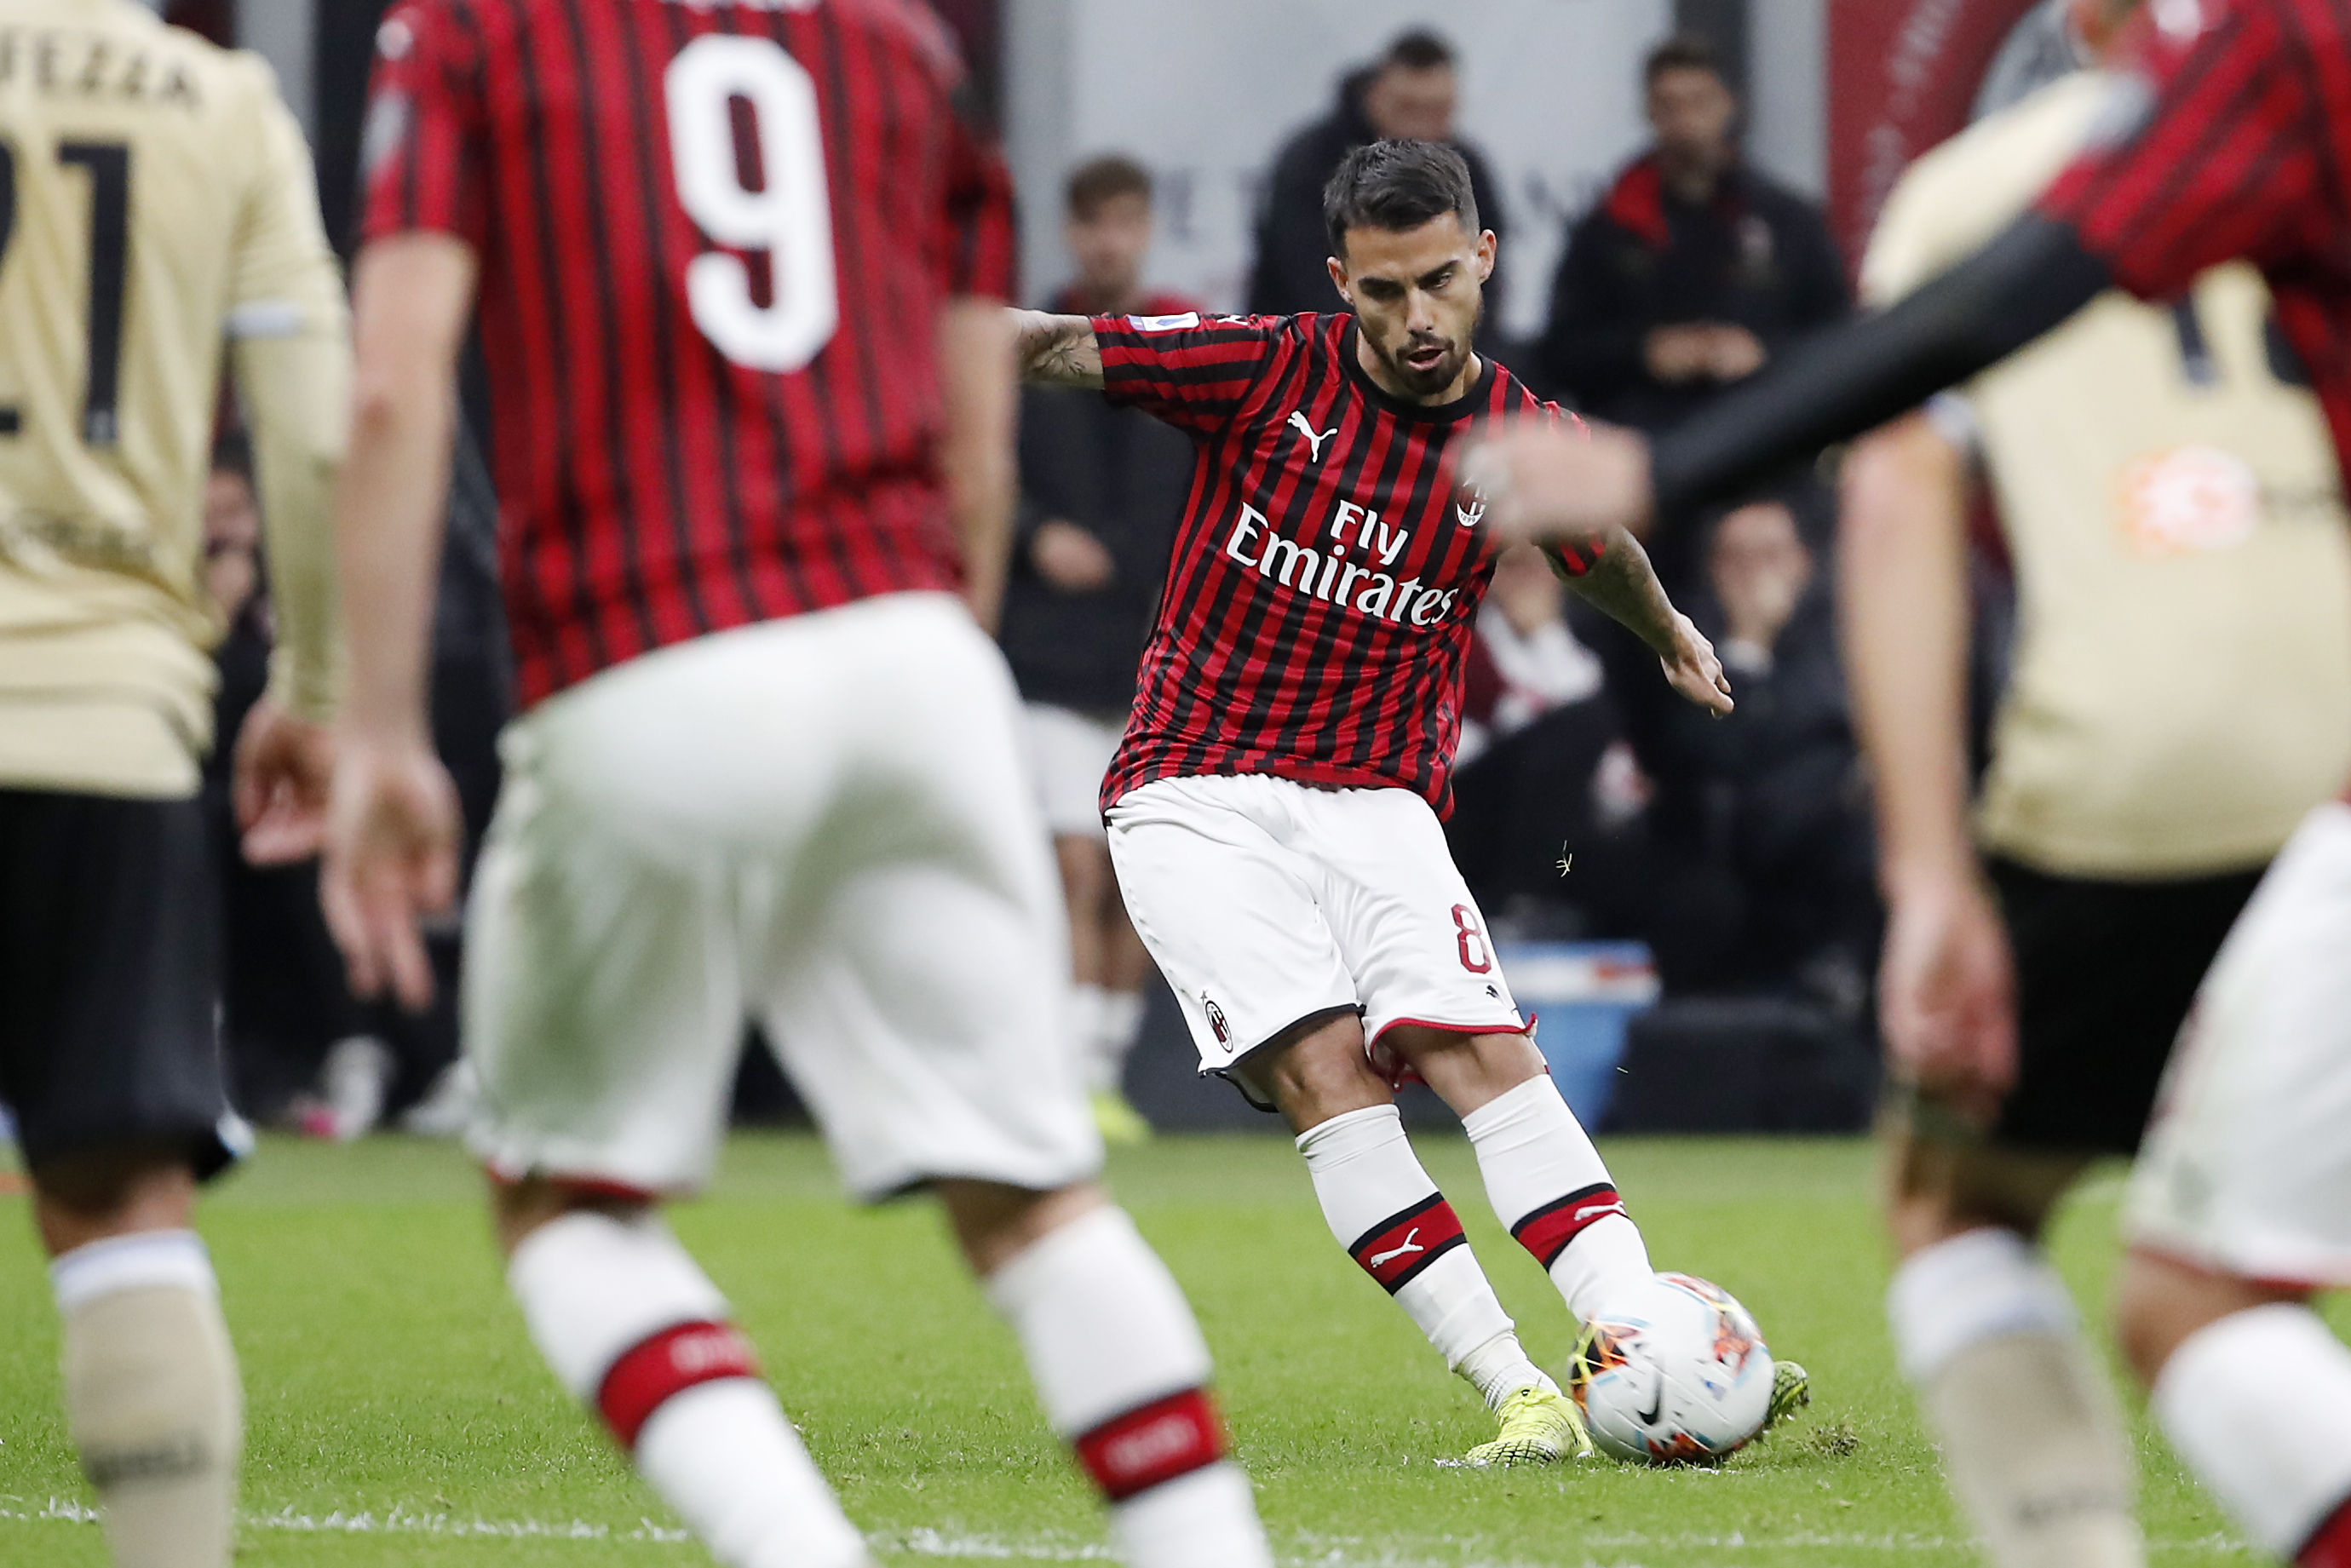 Suso's goal lifts AC Milan to 1st win under Pioli